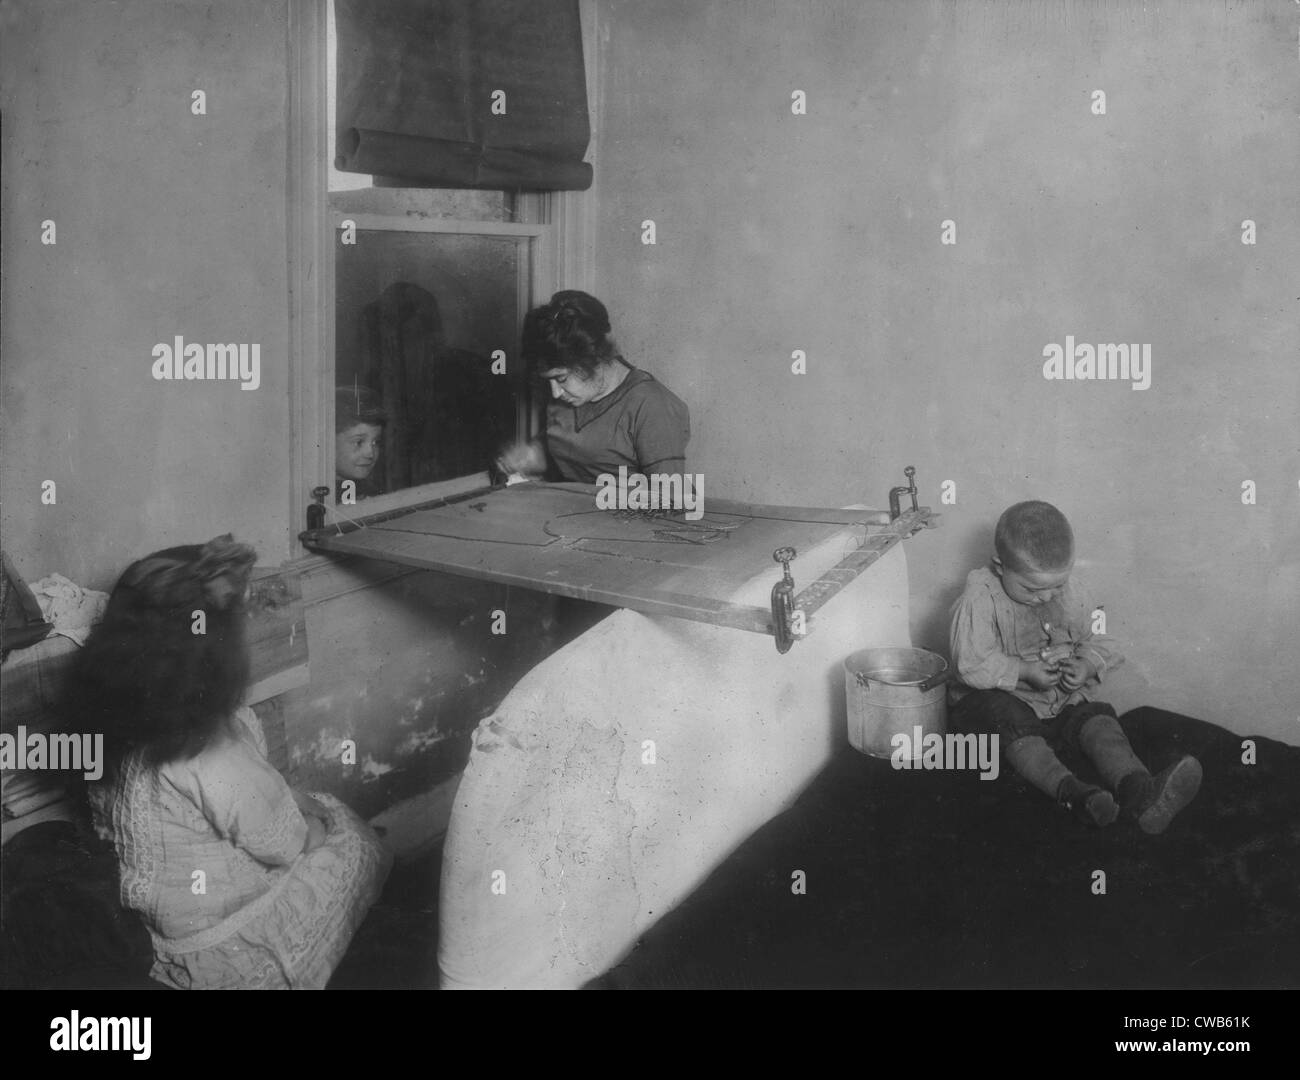 Hine Black and White Stock Photos & Images - Alamy